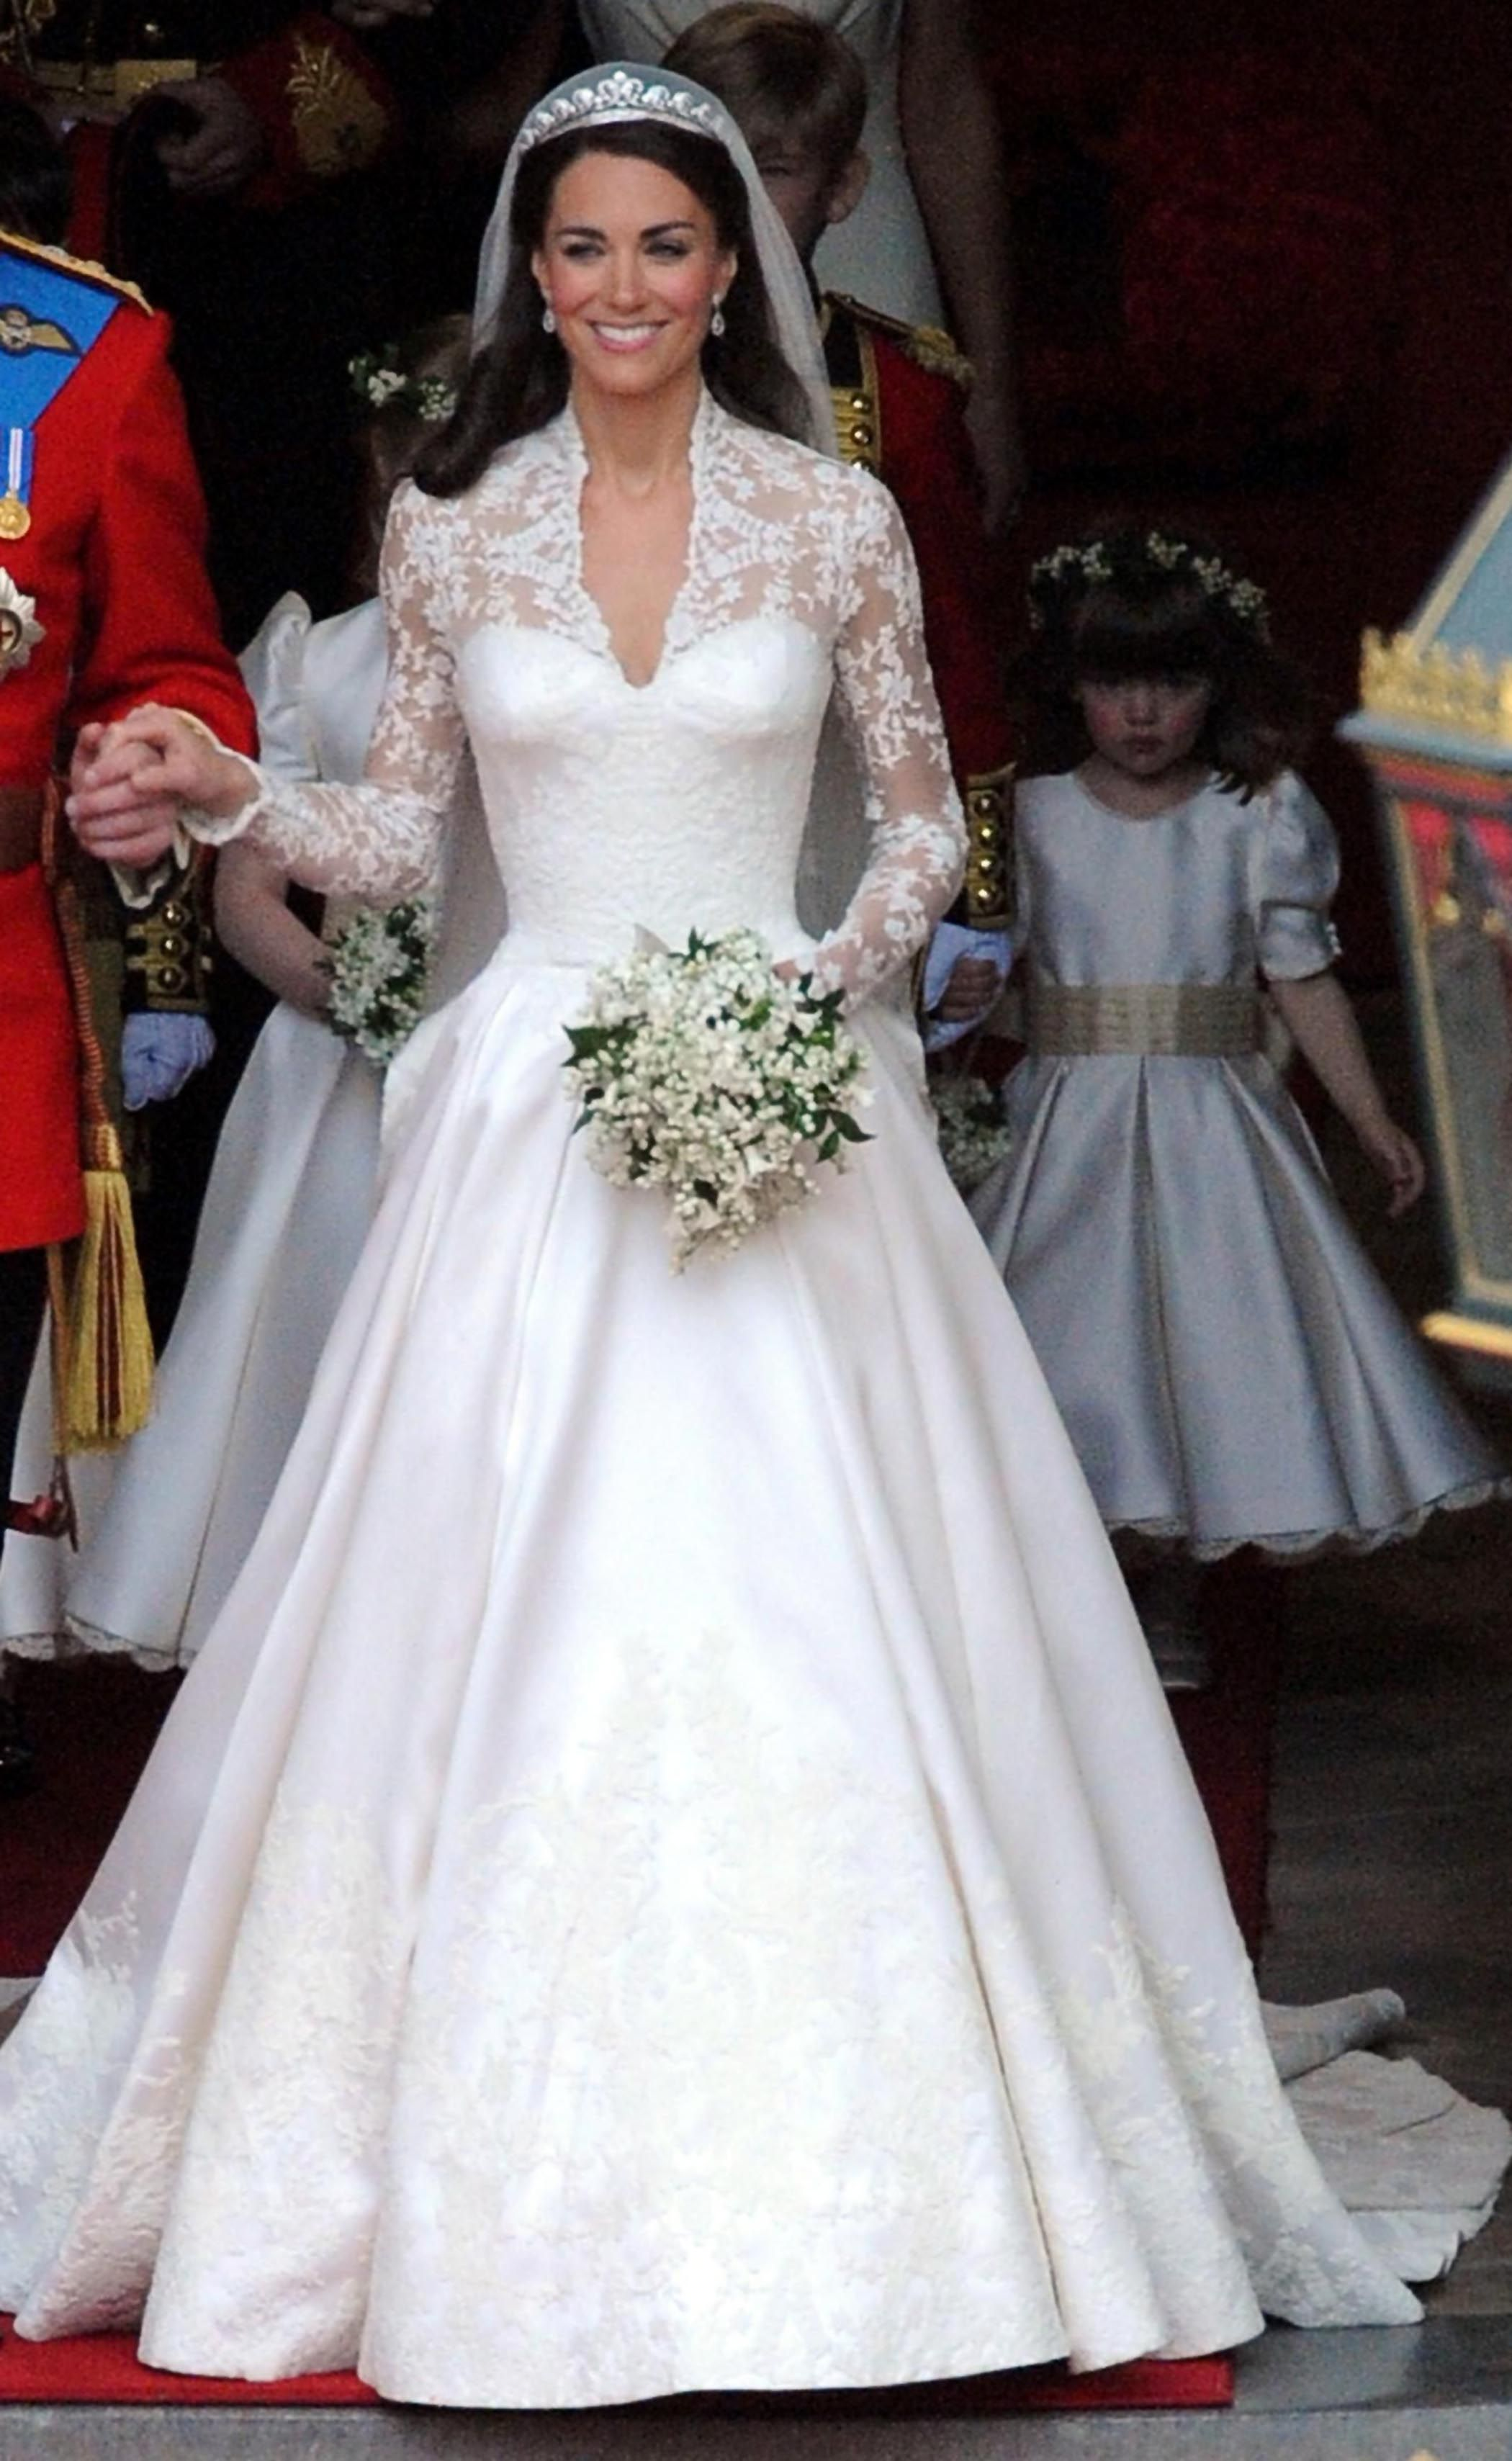 Kate Middletons Wedding Dresses.10 New Rules For Wedding Dresses Things To Wear Kate